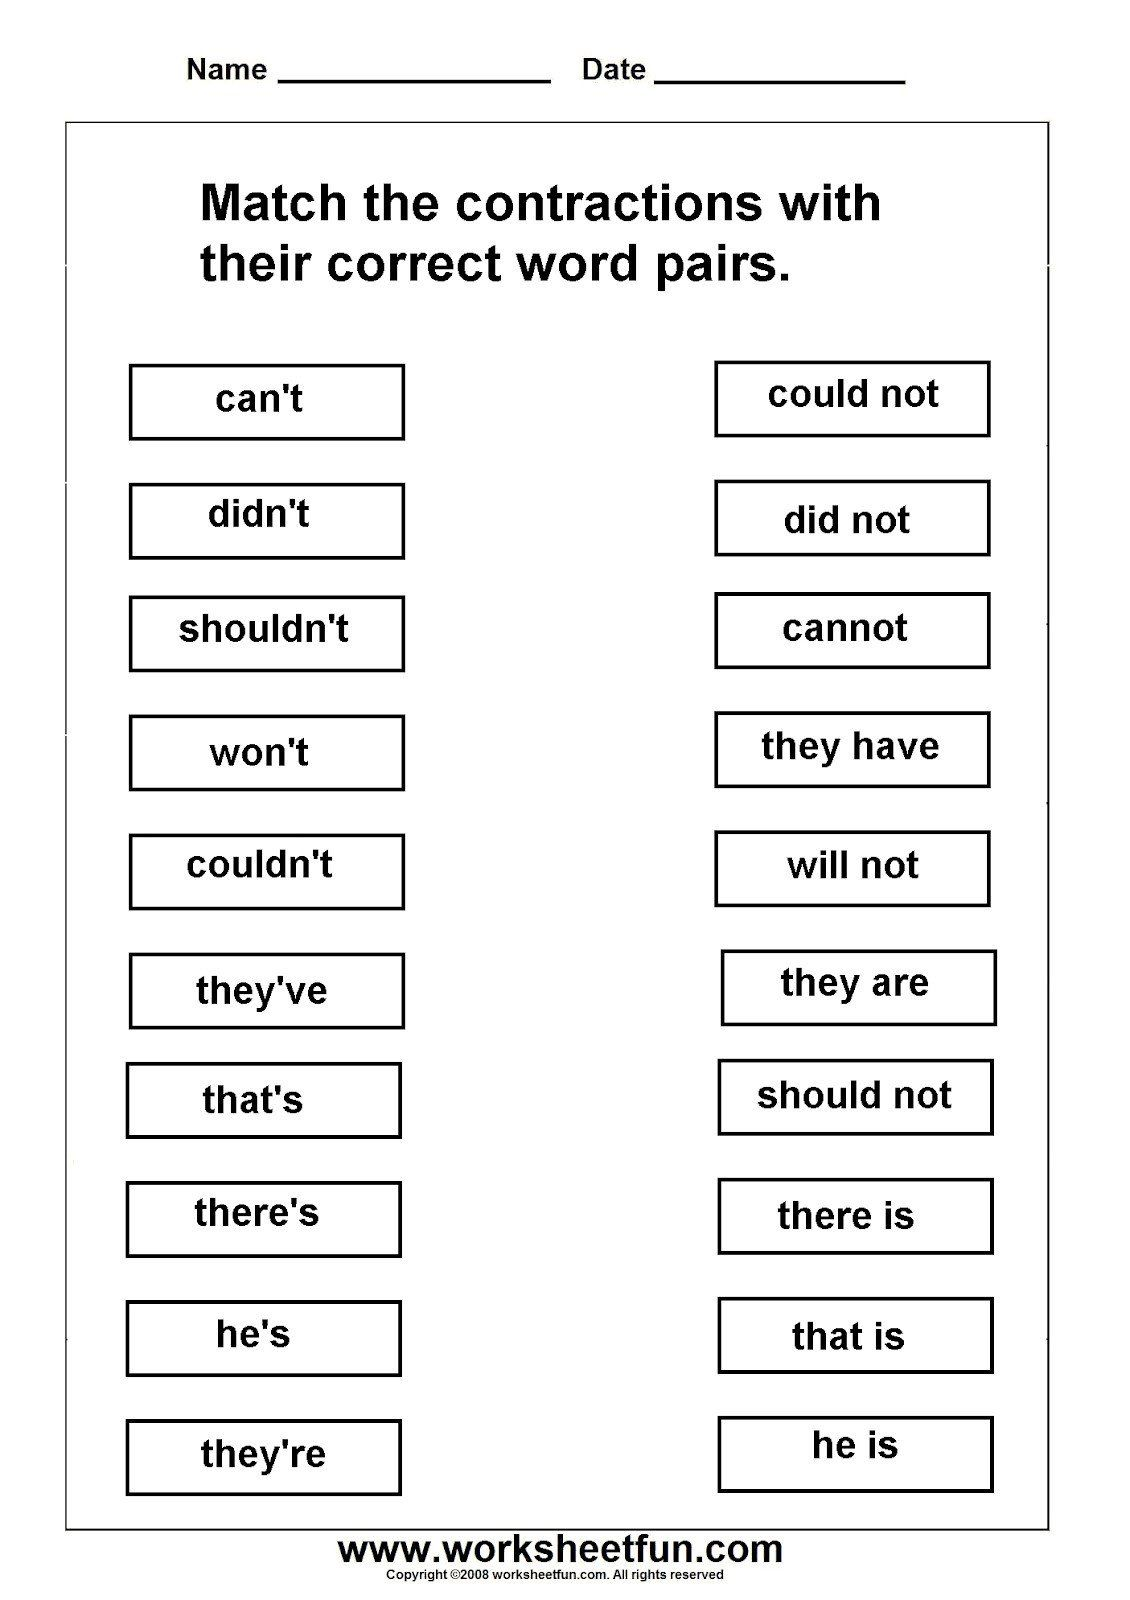 medium resolution of Worksheet About Contractions   Printable Worksheets and Activities for  Teachers